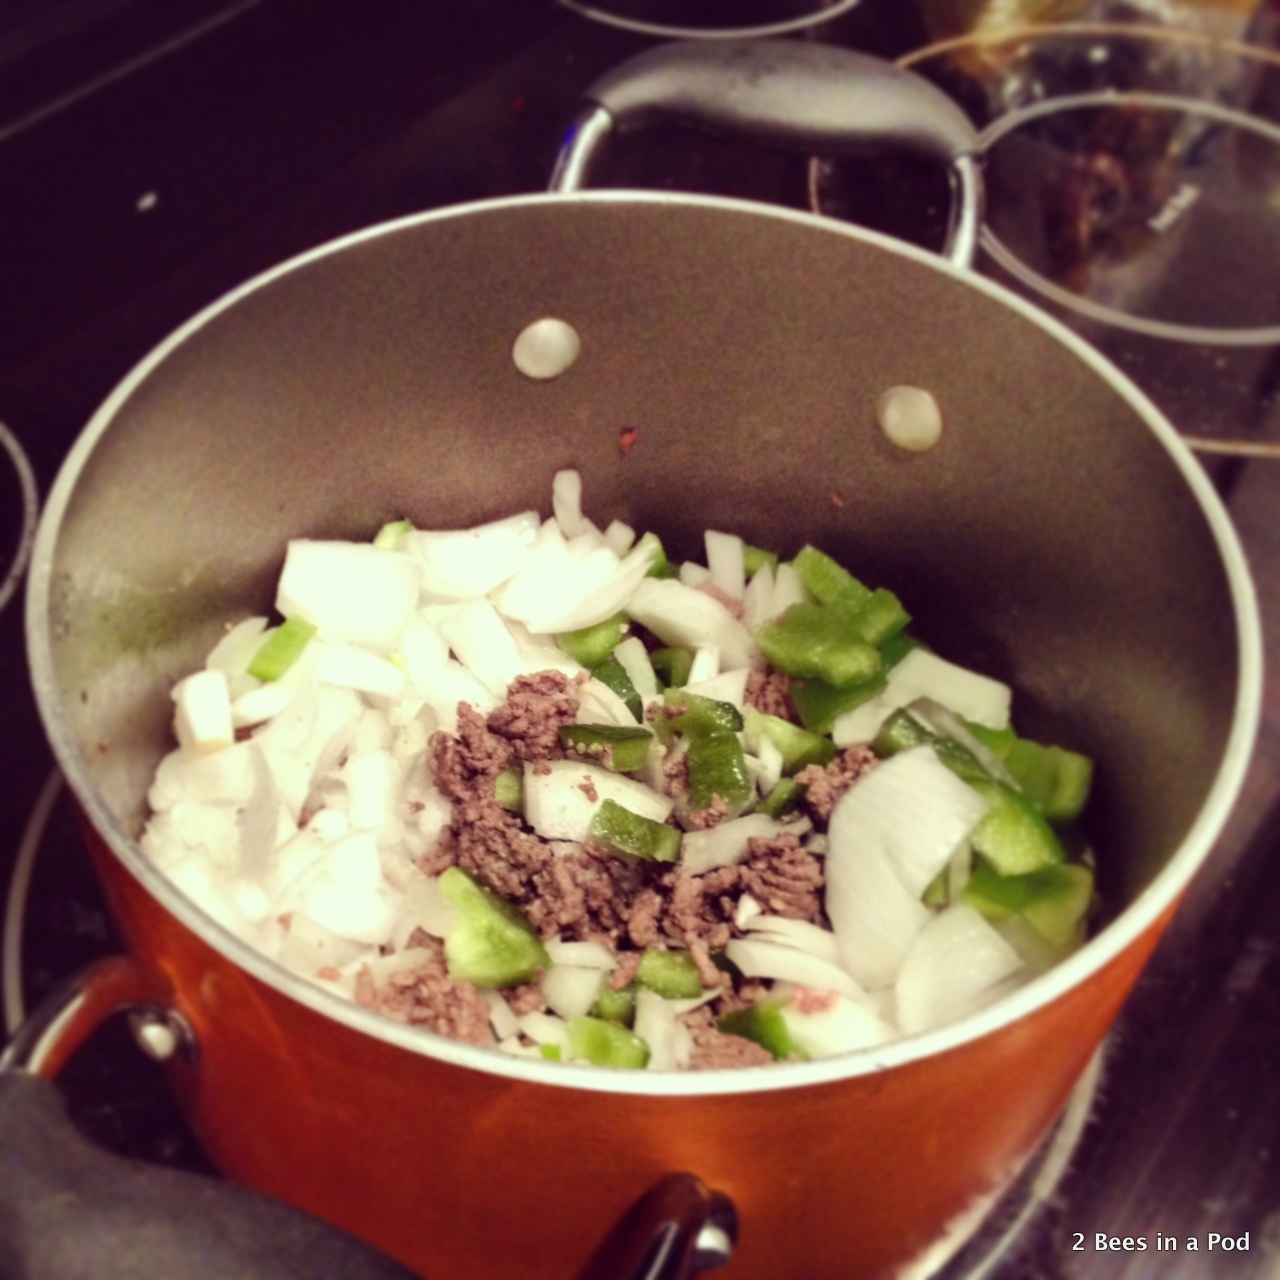 1-Sauteing lean ground beef, onions, green pepper for chili